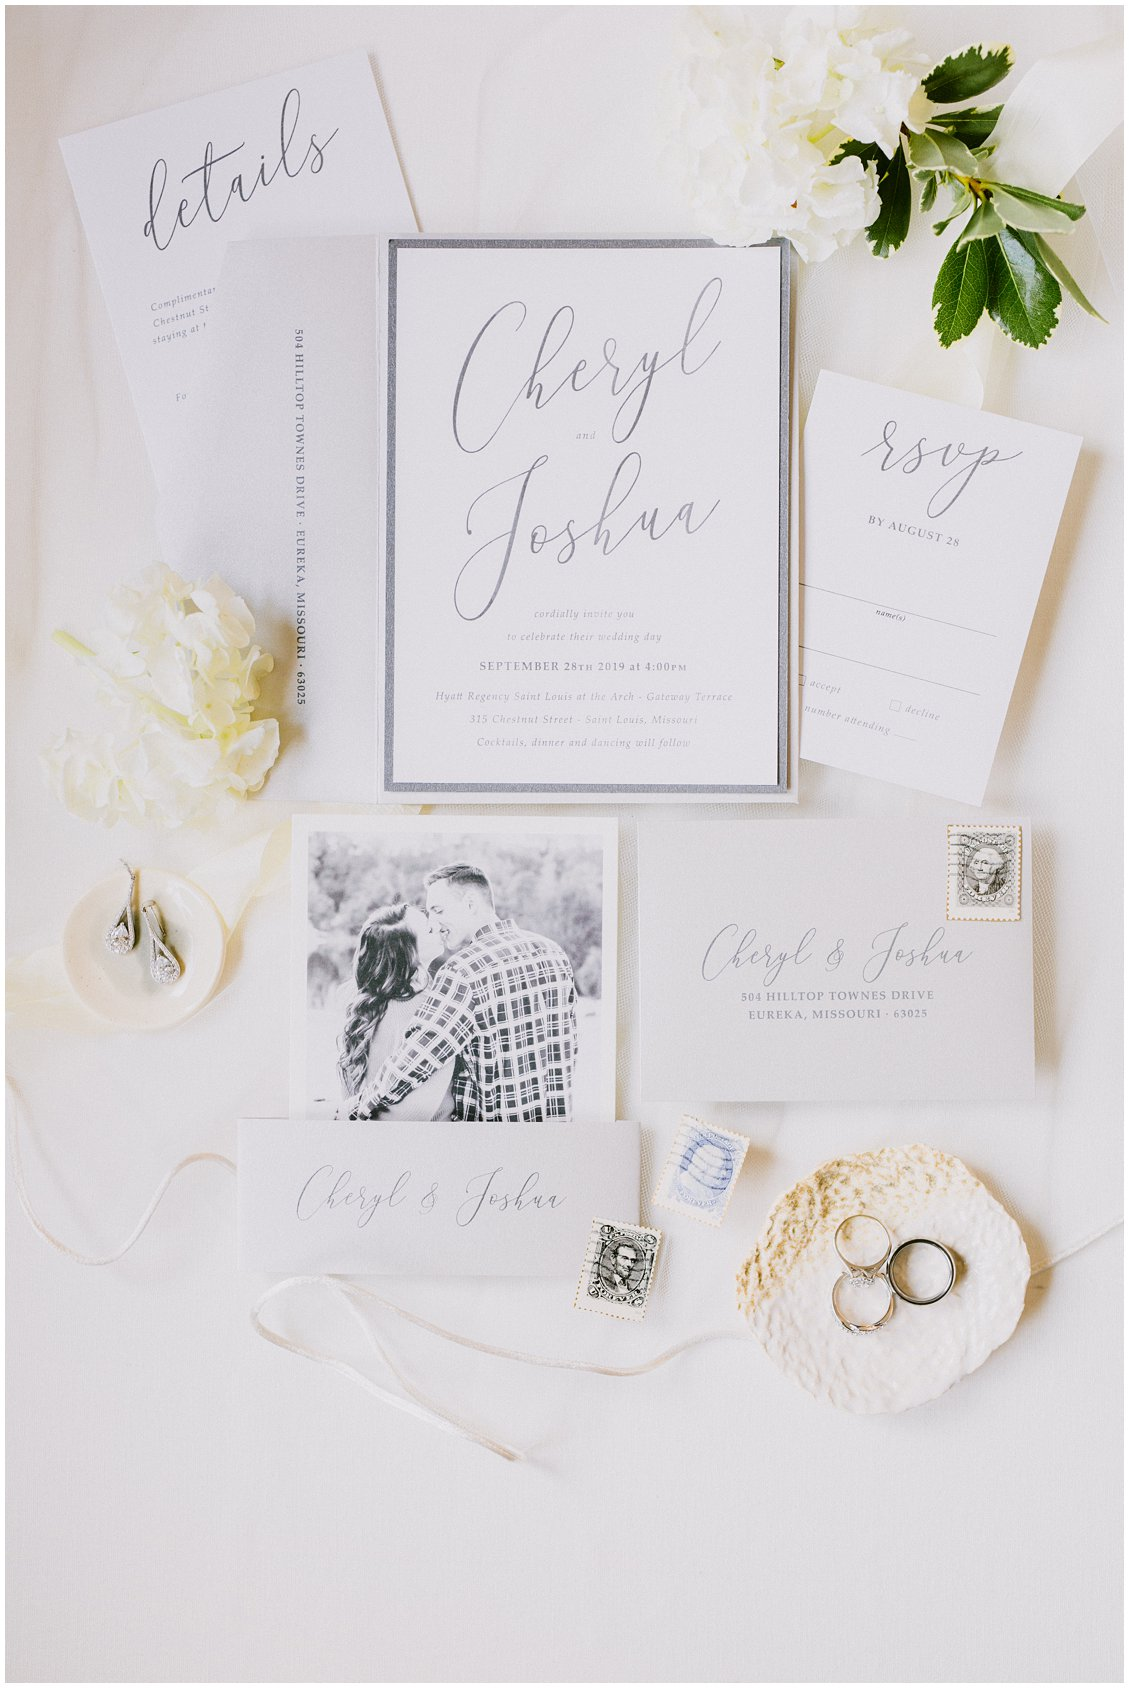 Bespoke Wedding invitation suite for a chic St Louis wedding by Pattengale Photography